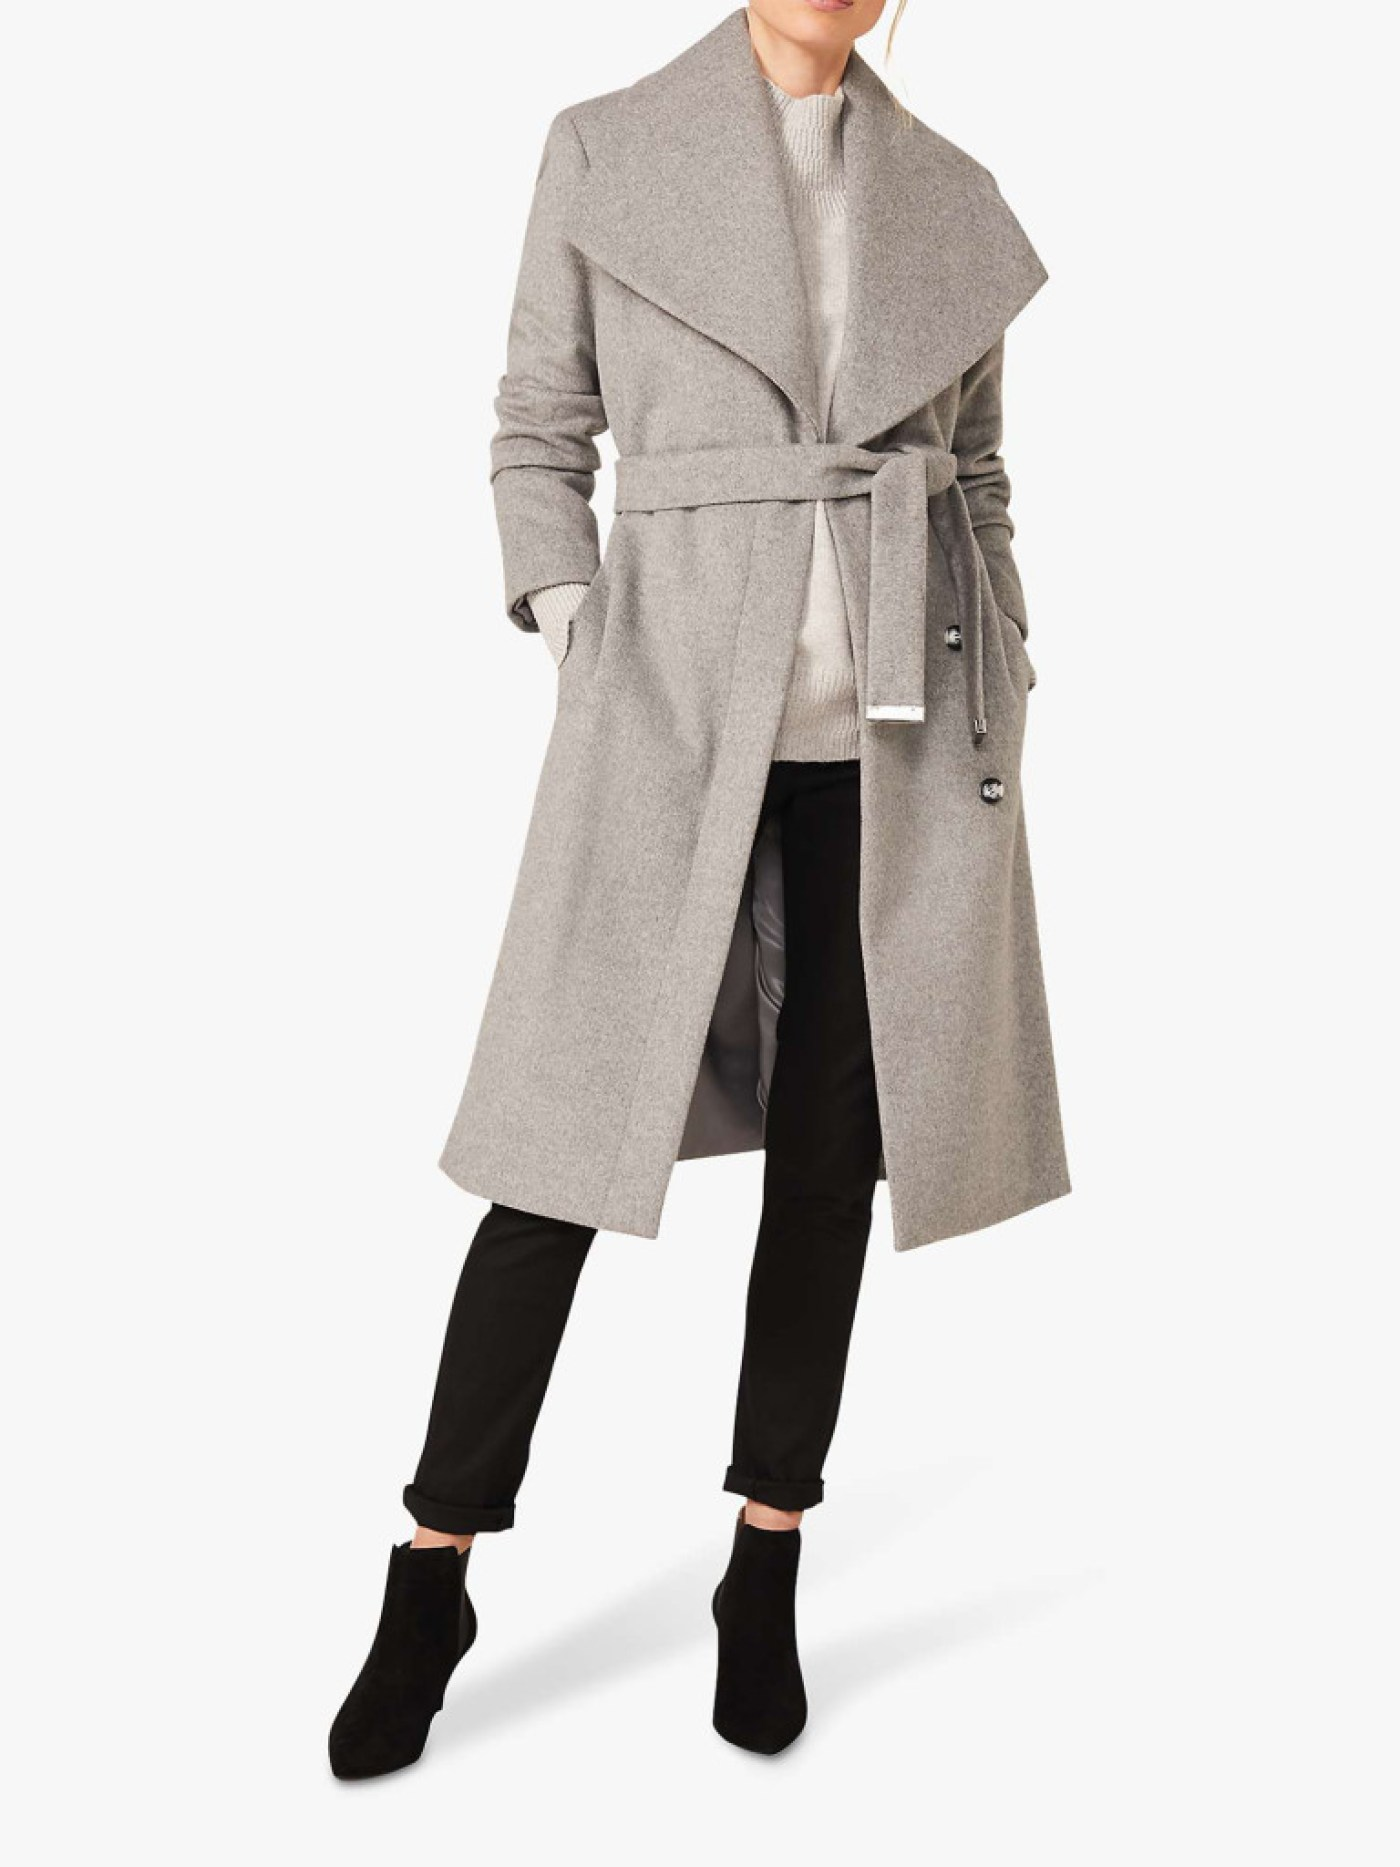 Phase Eight Nicci Belted Wool Blend Coat, Grey (Picture: John Lewis)